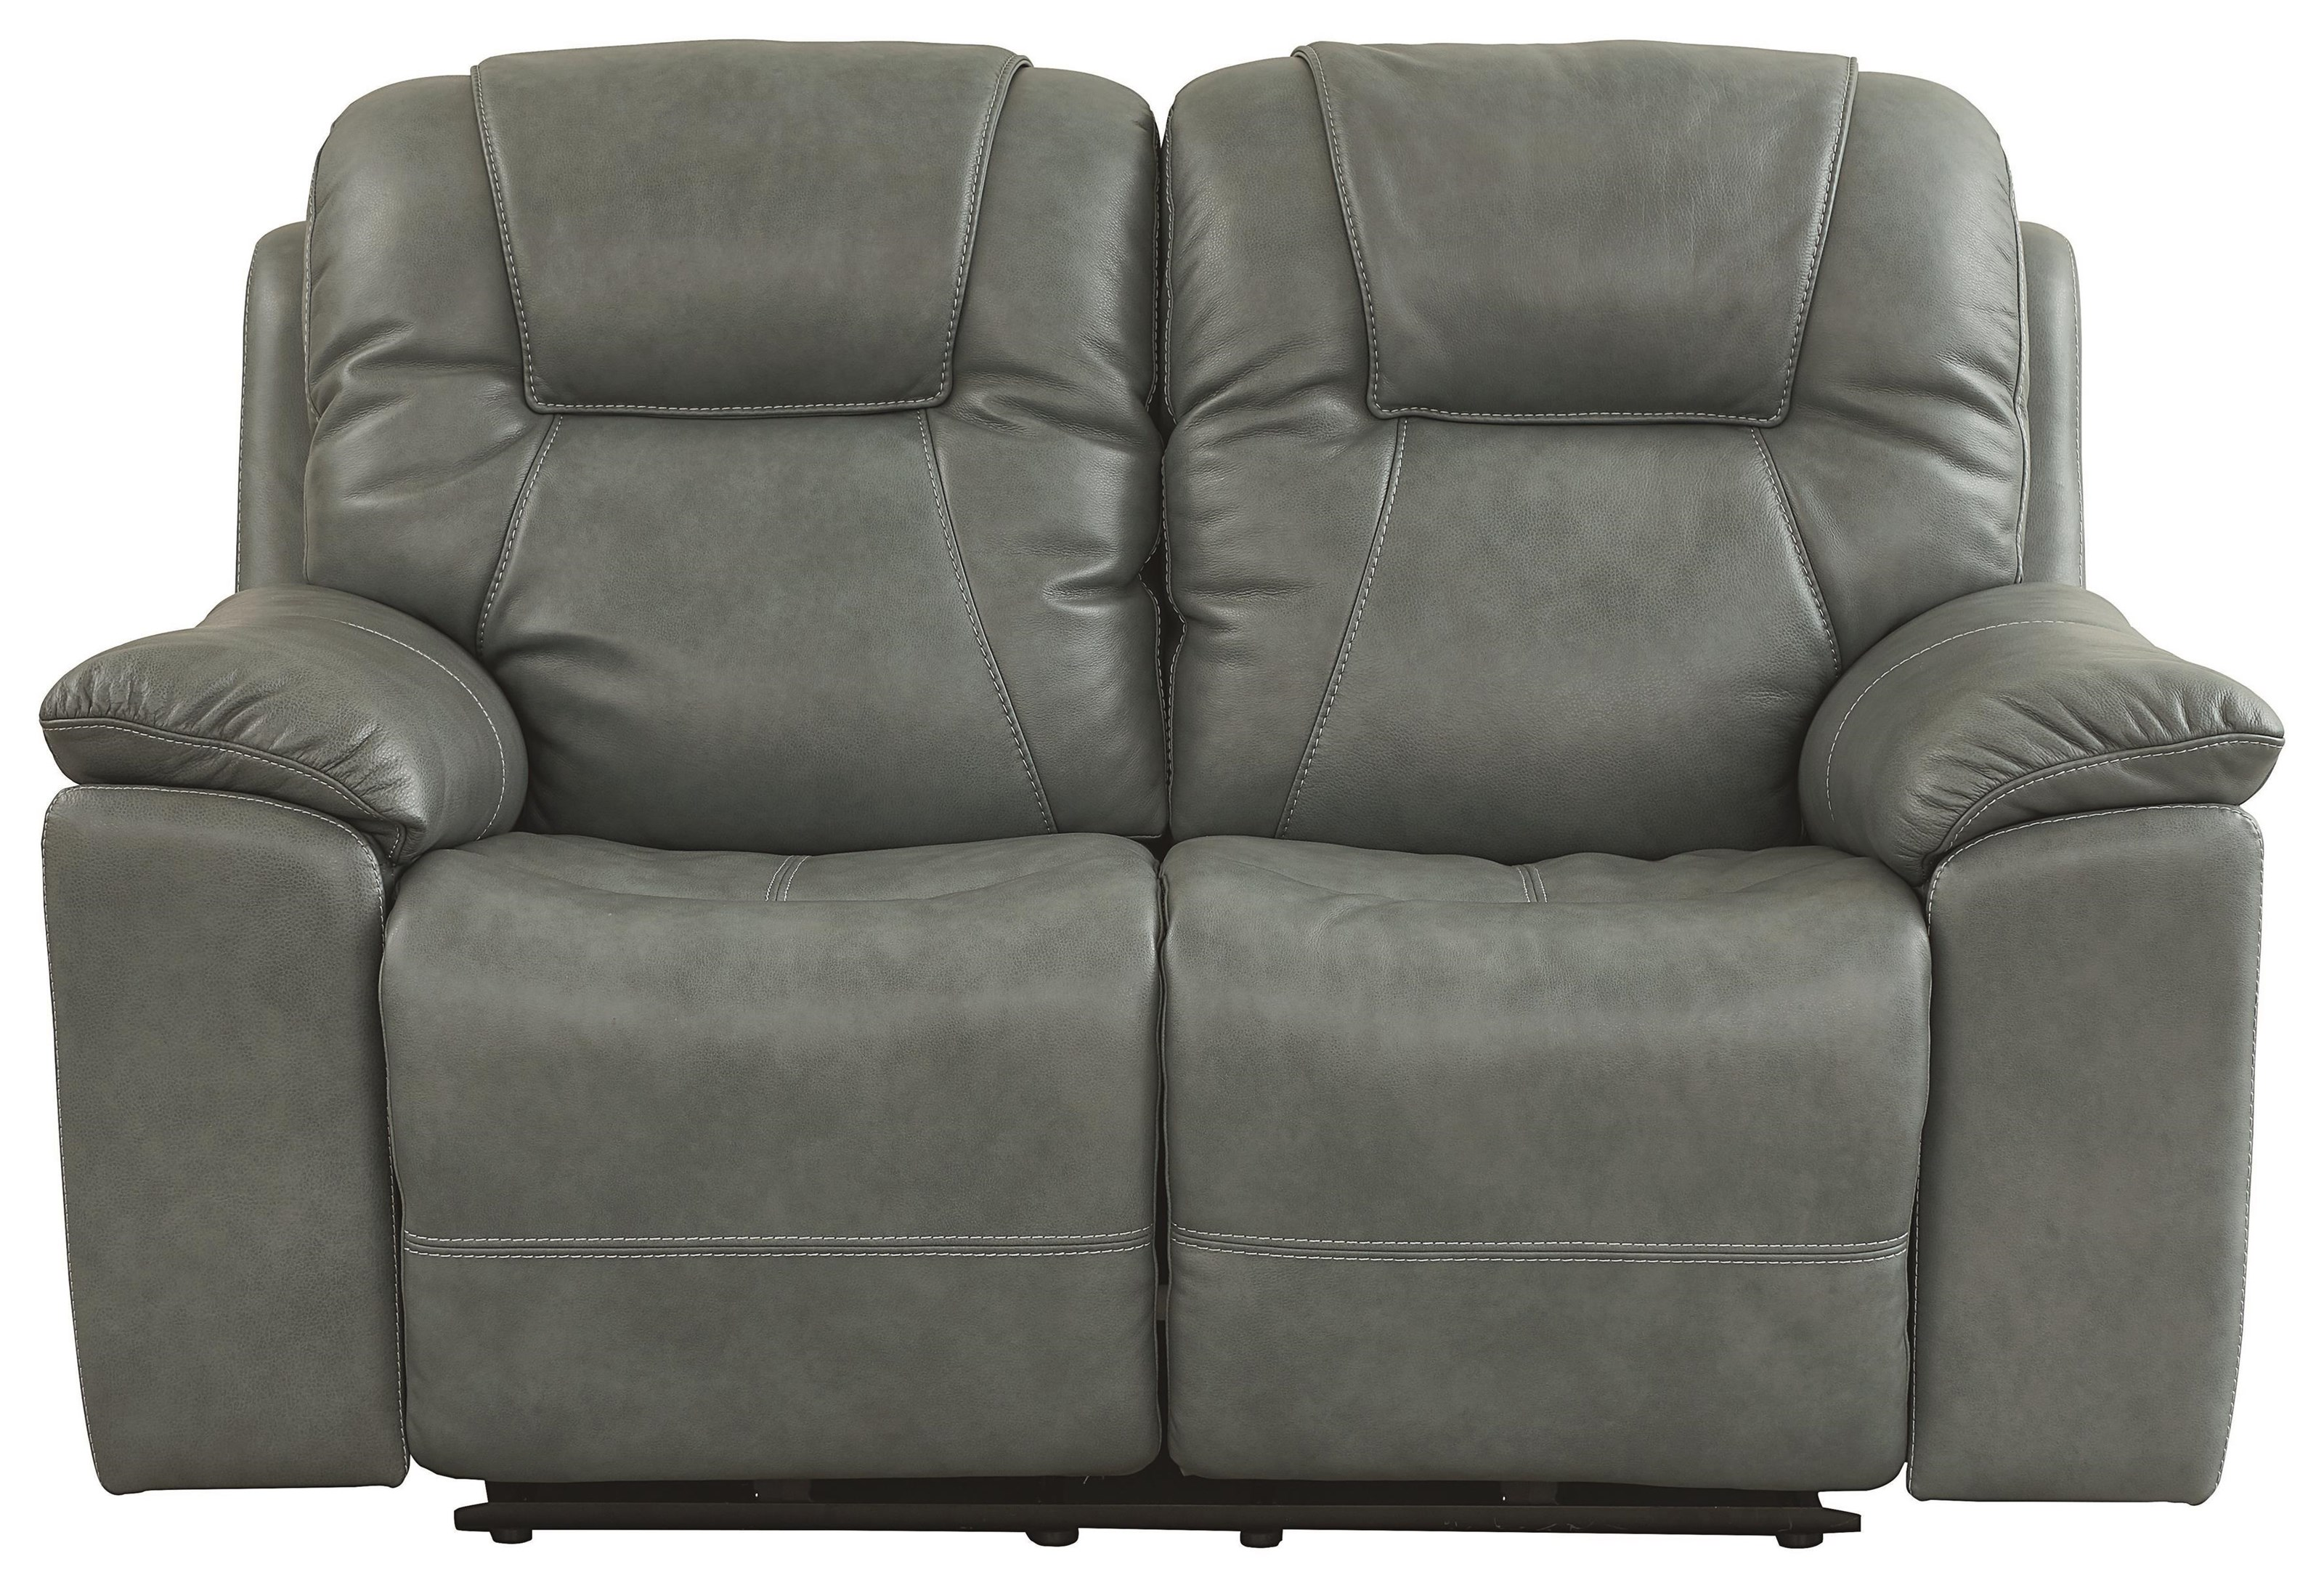 Club Level - Chandler Reclining Loveseat by Bassett at Johnny Janosik